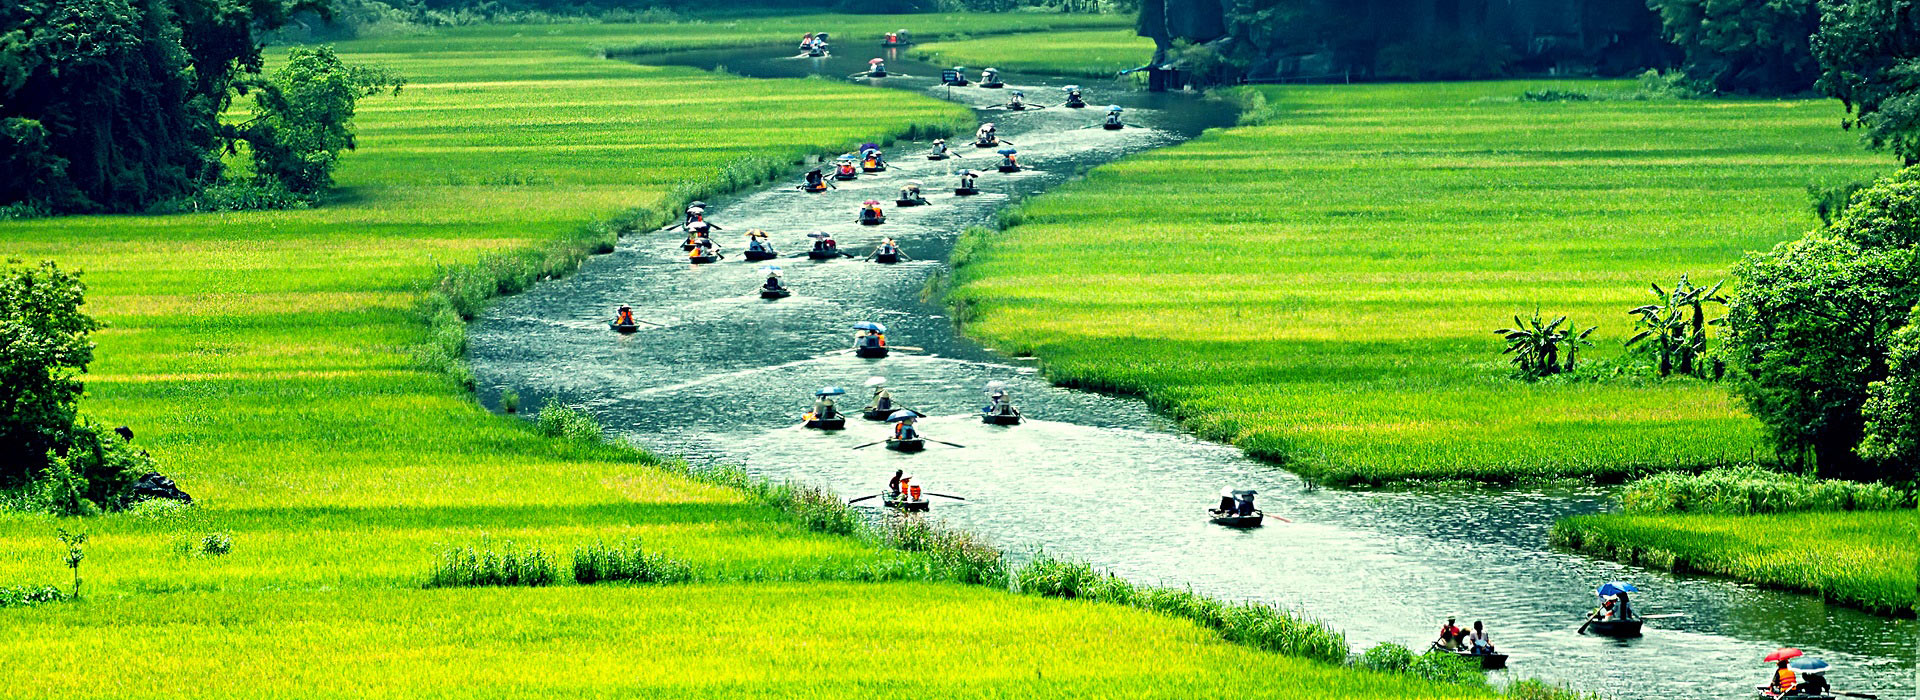 rice_field_and_river_ninhbinh